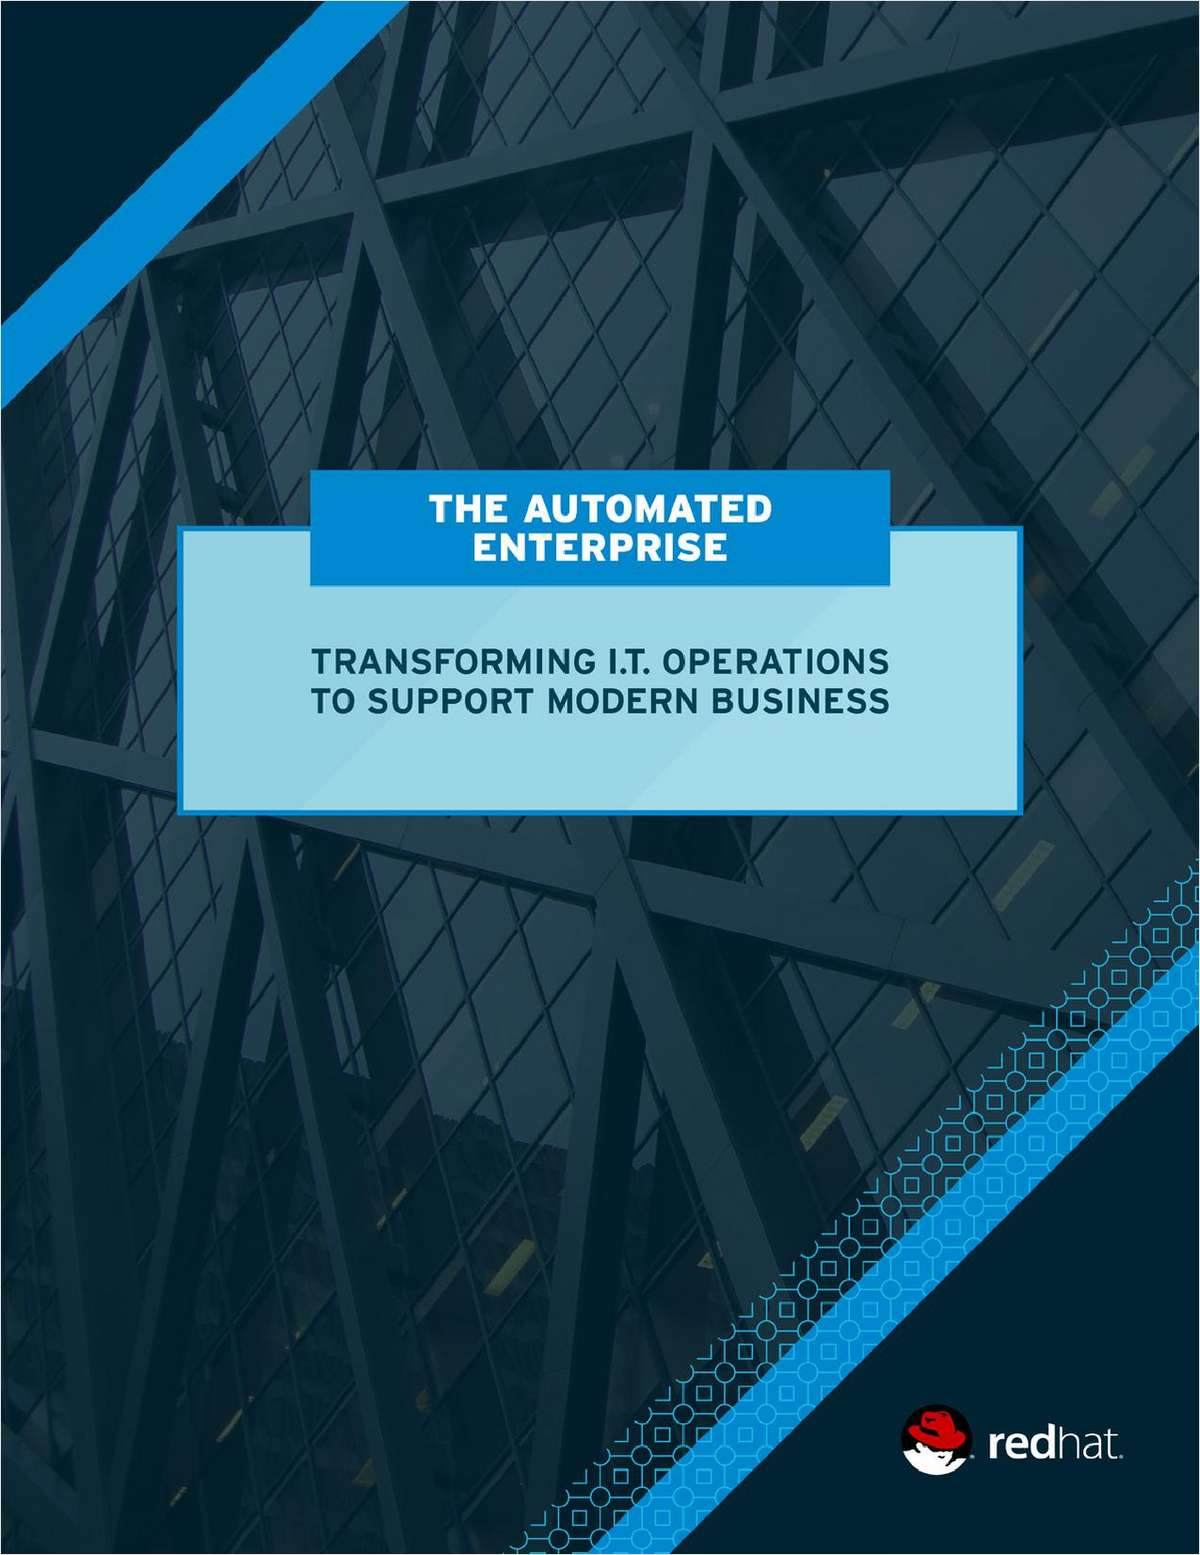 The Automated Enterprise